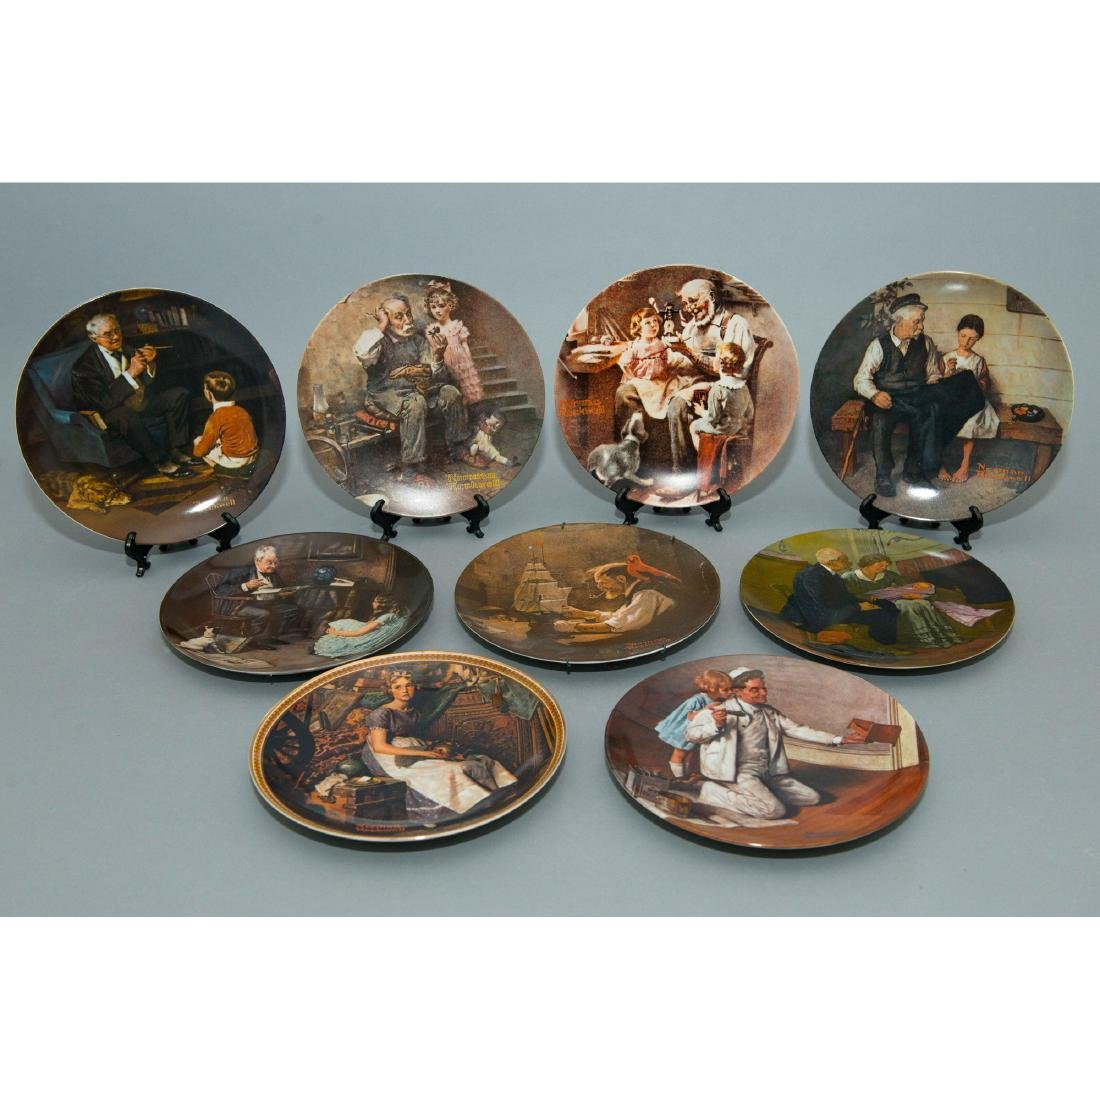 9 NORMAN ROCKWELL COMMEMORATIVE PLATES